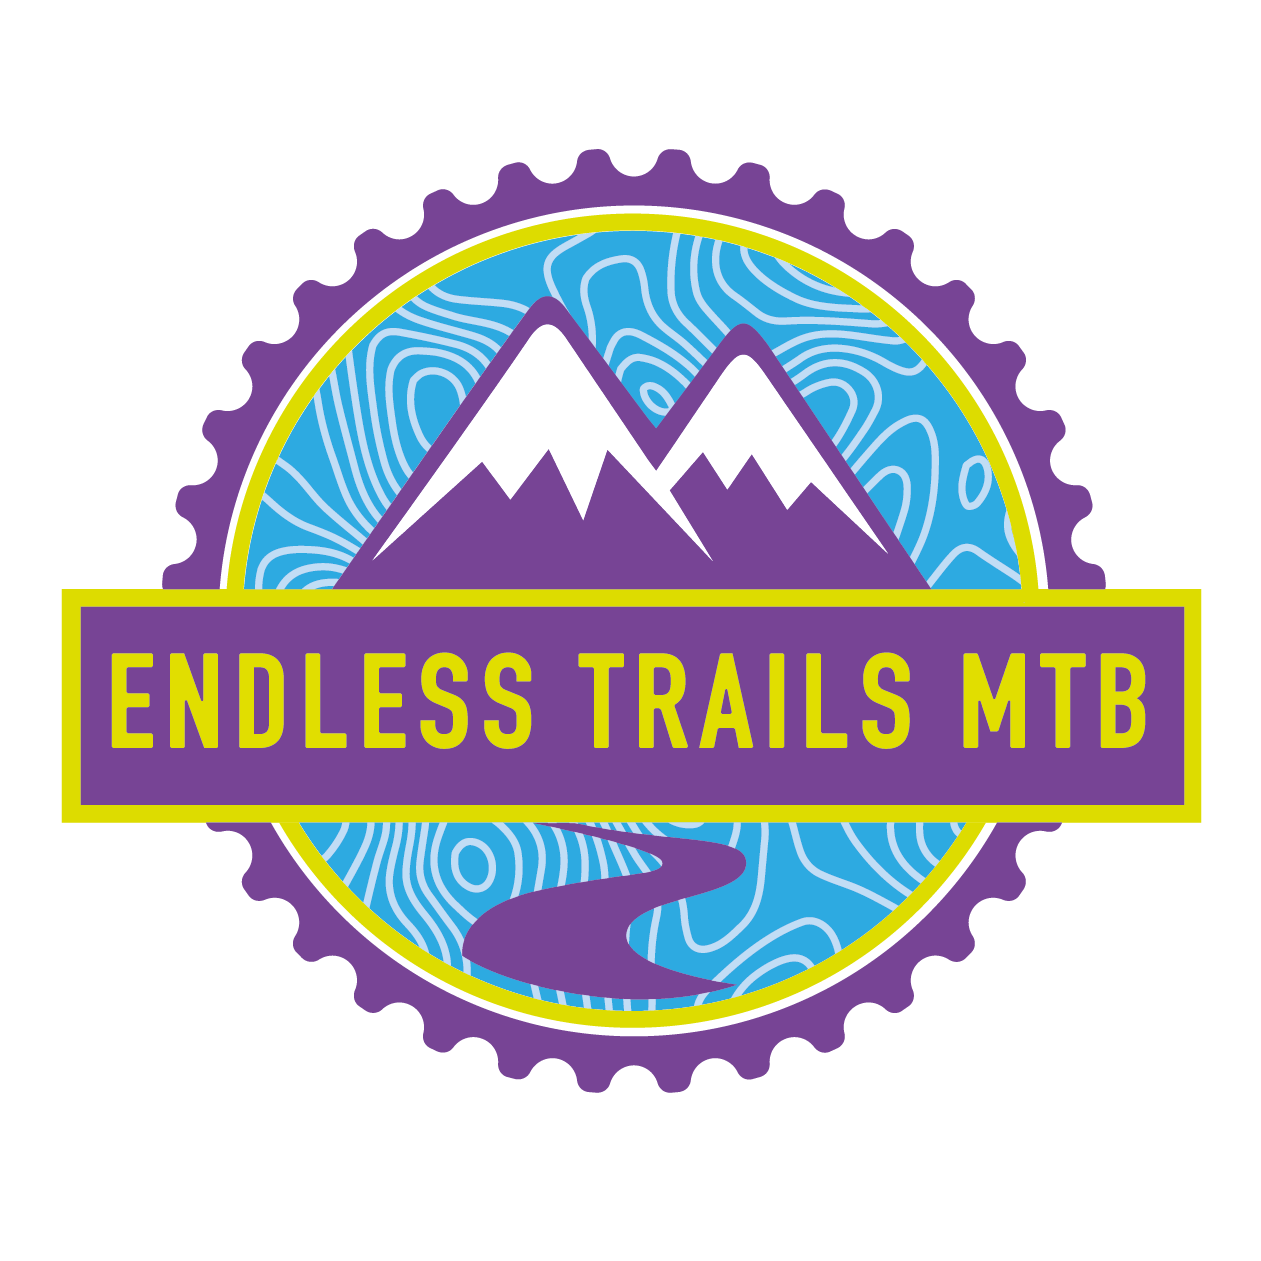 Endless Trails MTB